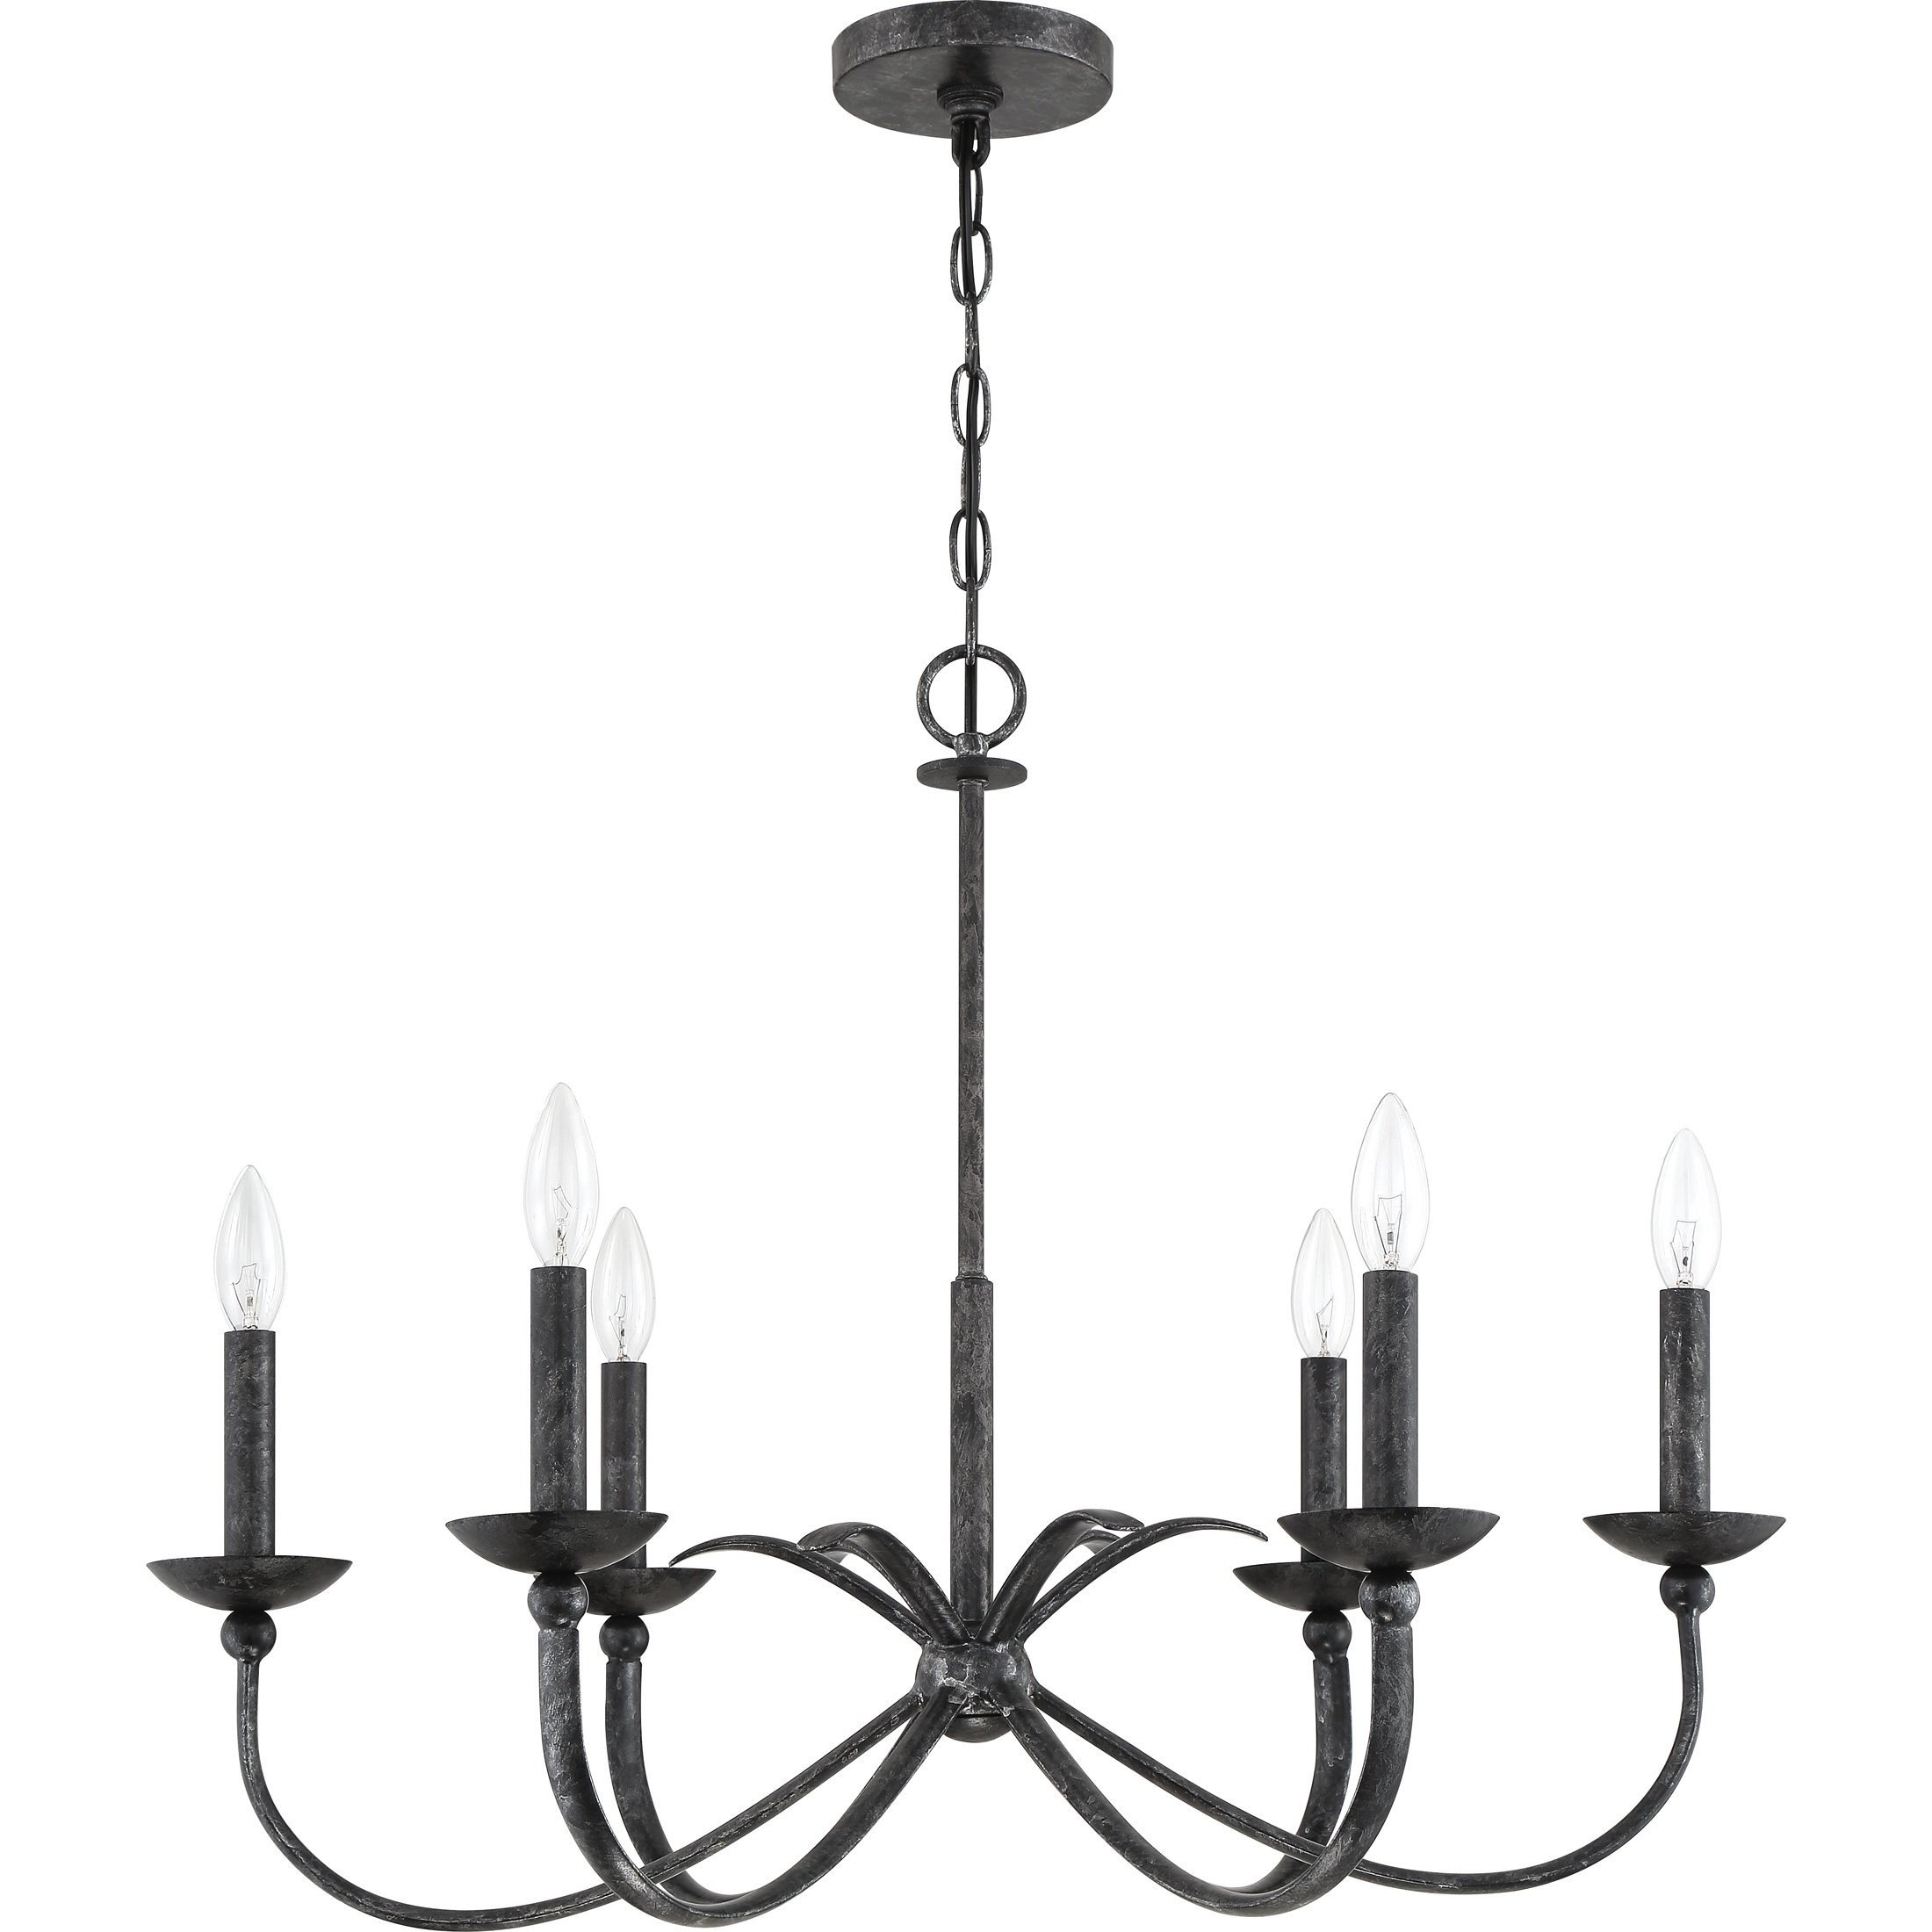 Quoizel Calligraphy Old Black 6 Light Chandelier In 2019 Throughout Hamza 6 Light Candle Style Chandeliers (View 17 of 30)